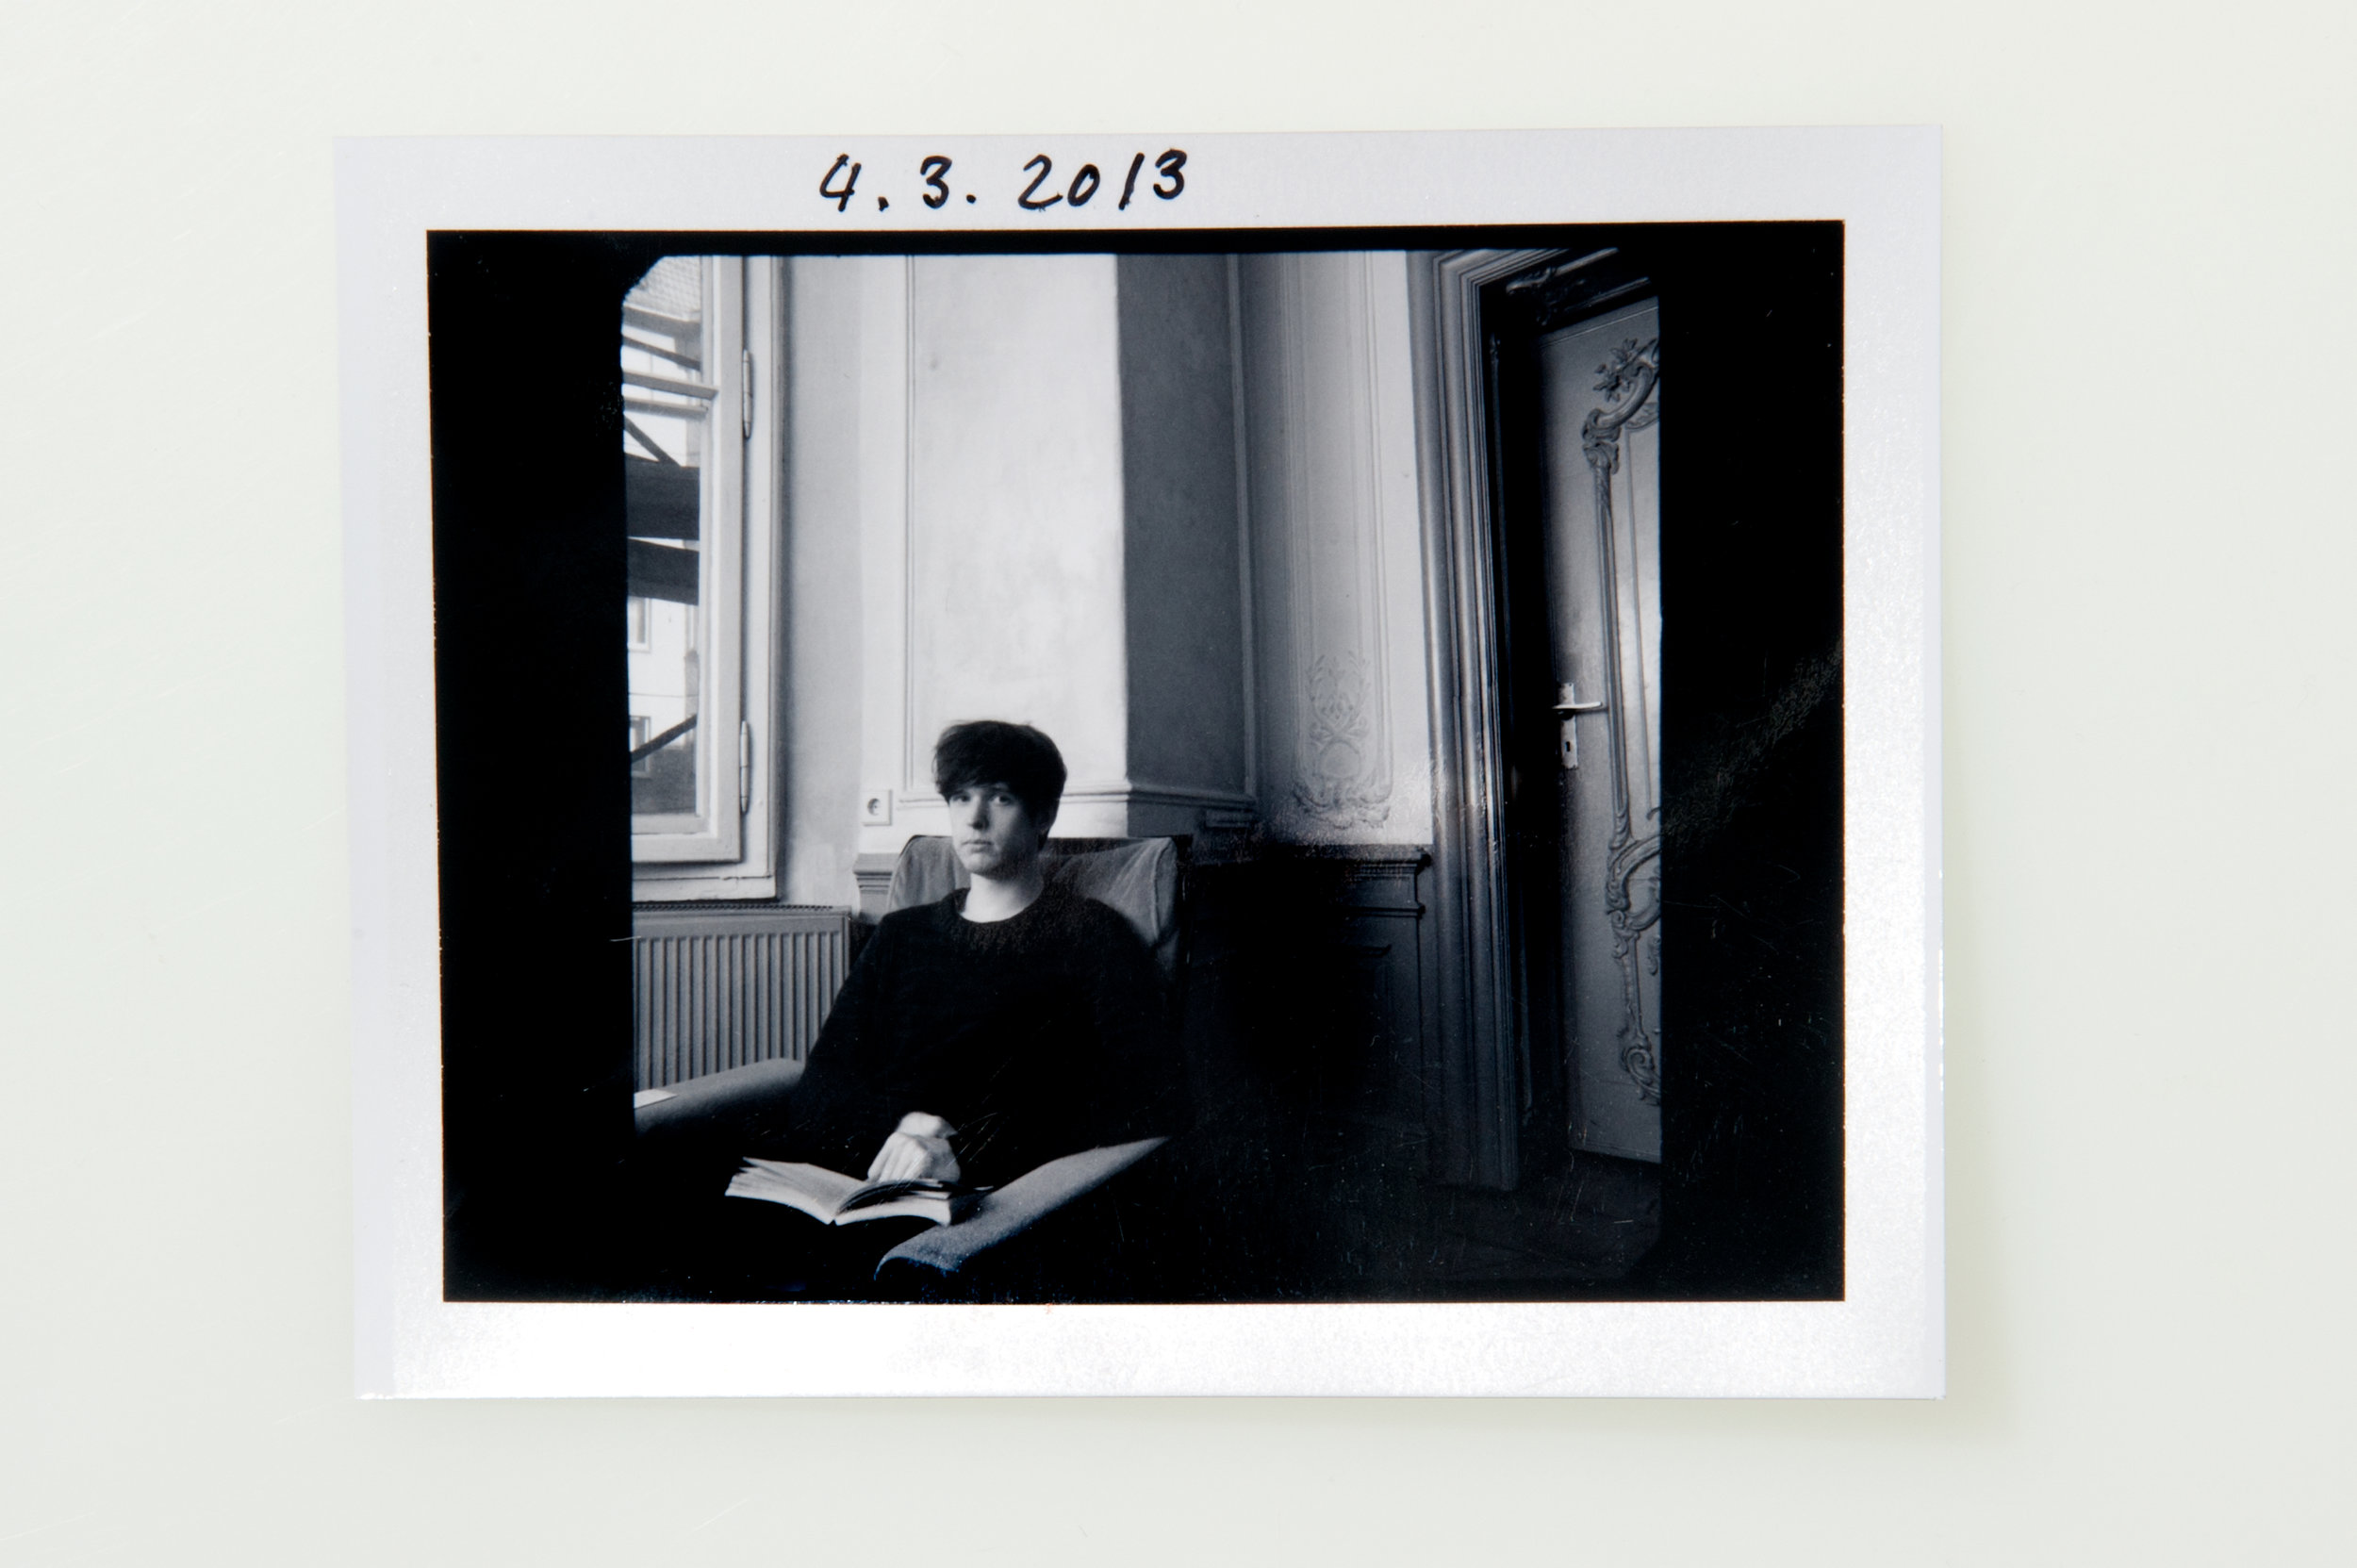 James Blake - Polaroid Type 664